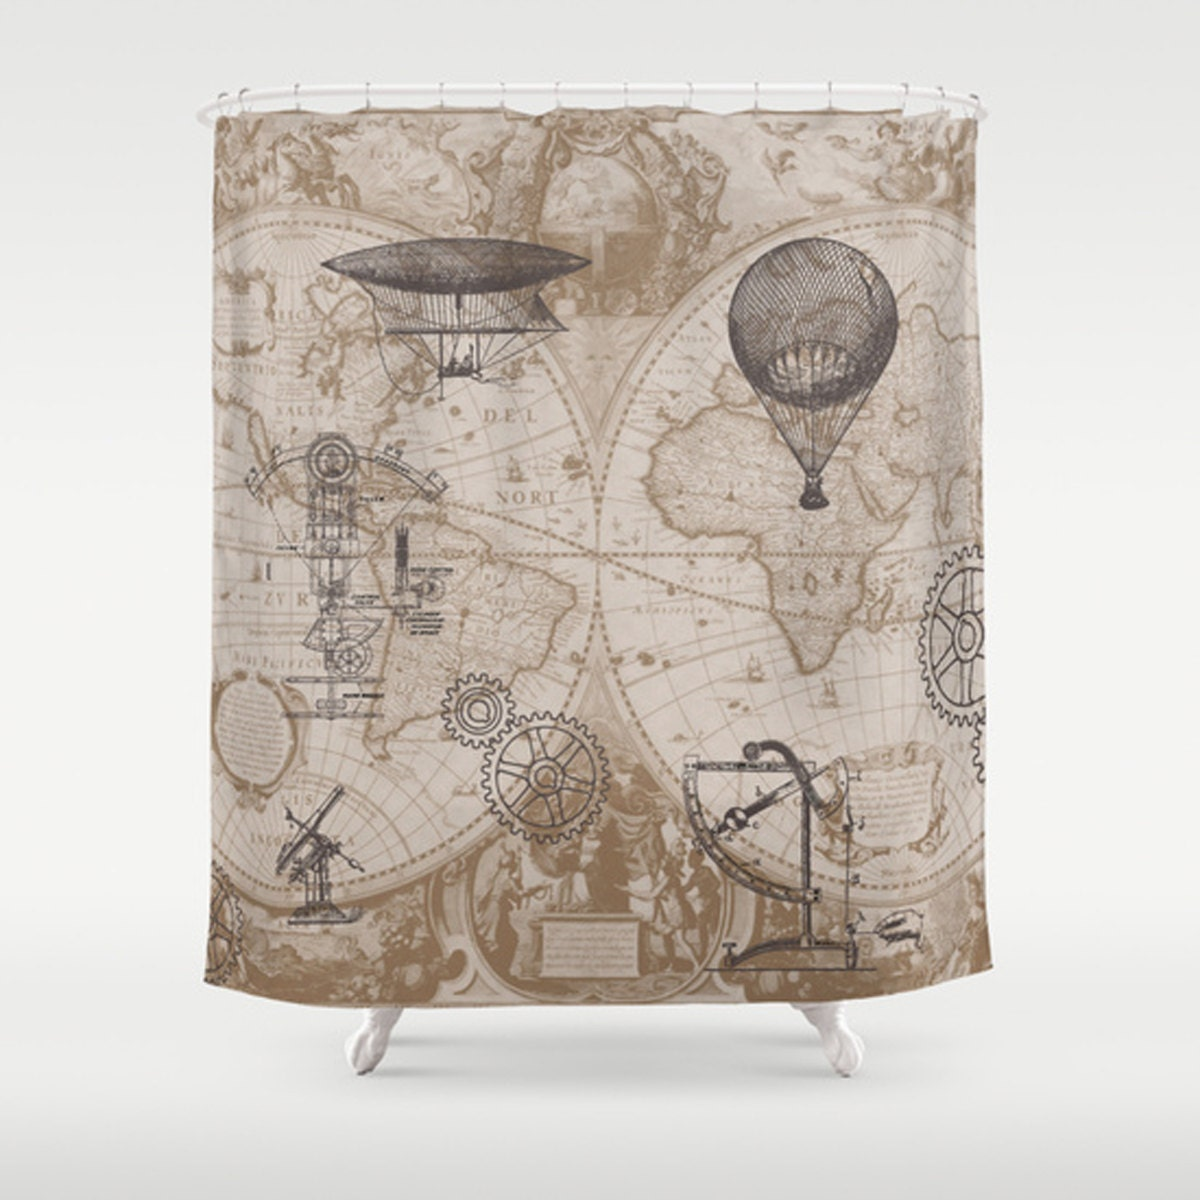 Steampunk Style Shower Curtain hot air balloons vintage